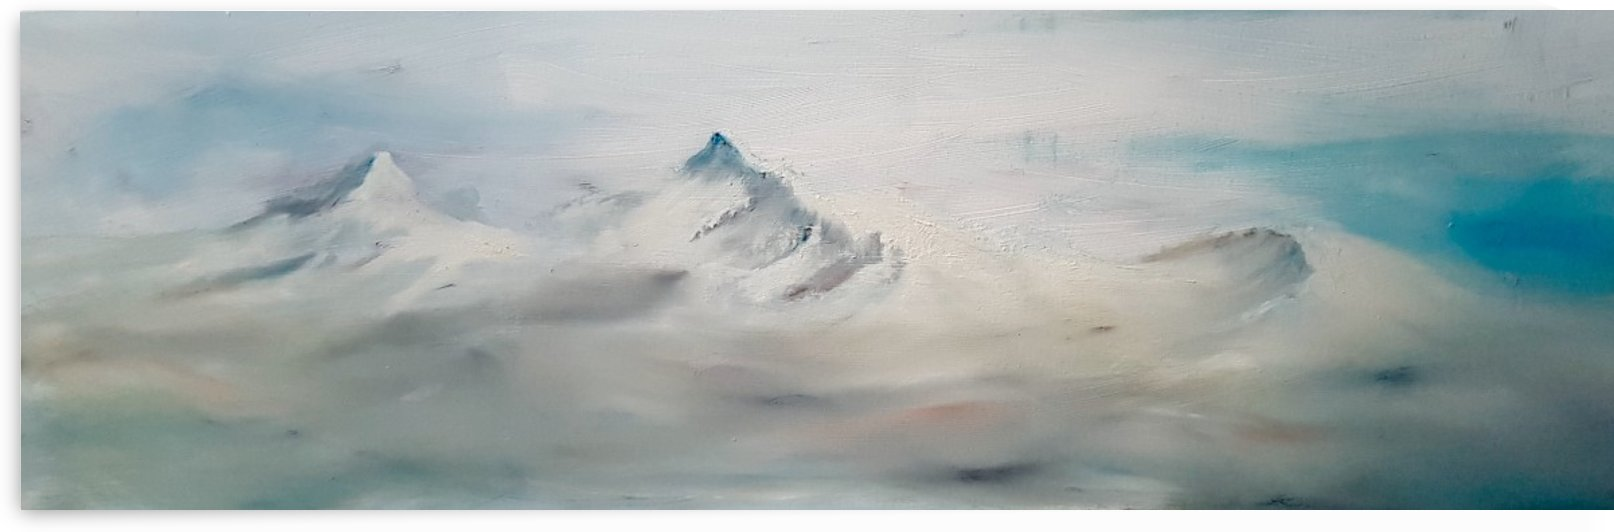 Misty snowy mountains  by Jackie Rimmer